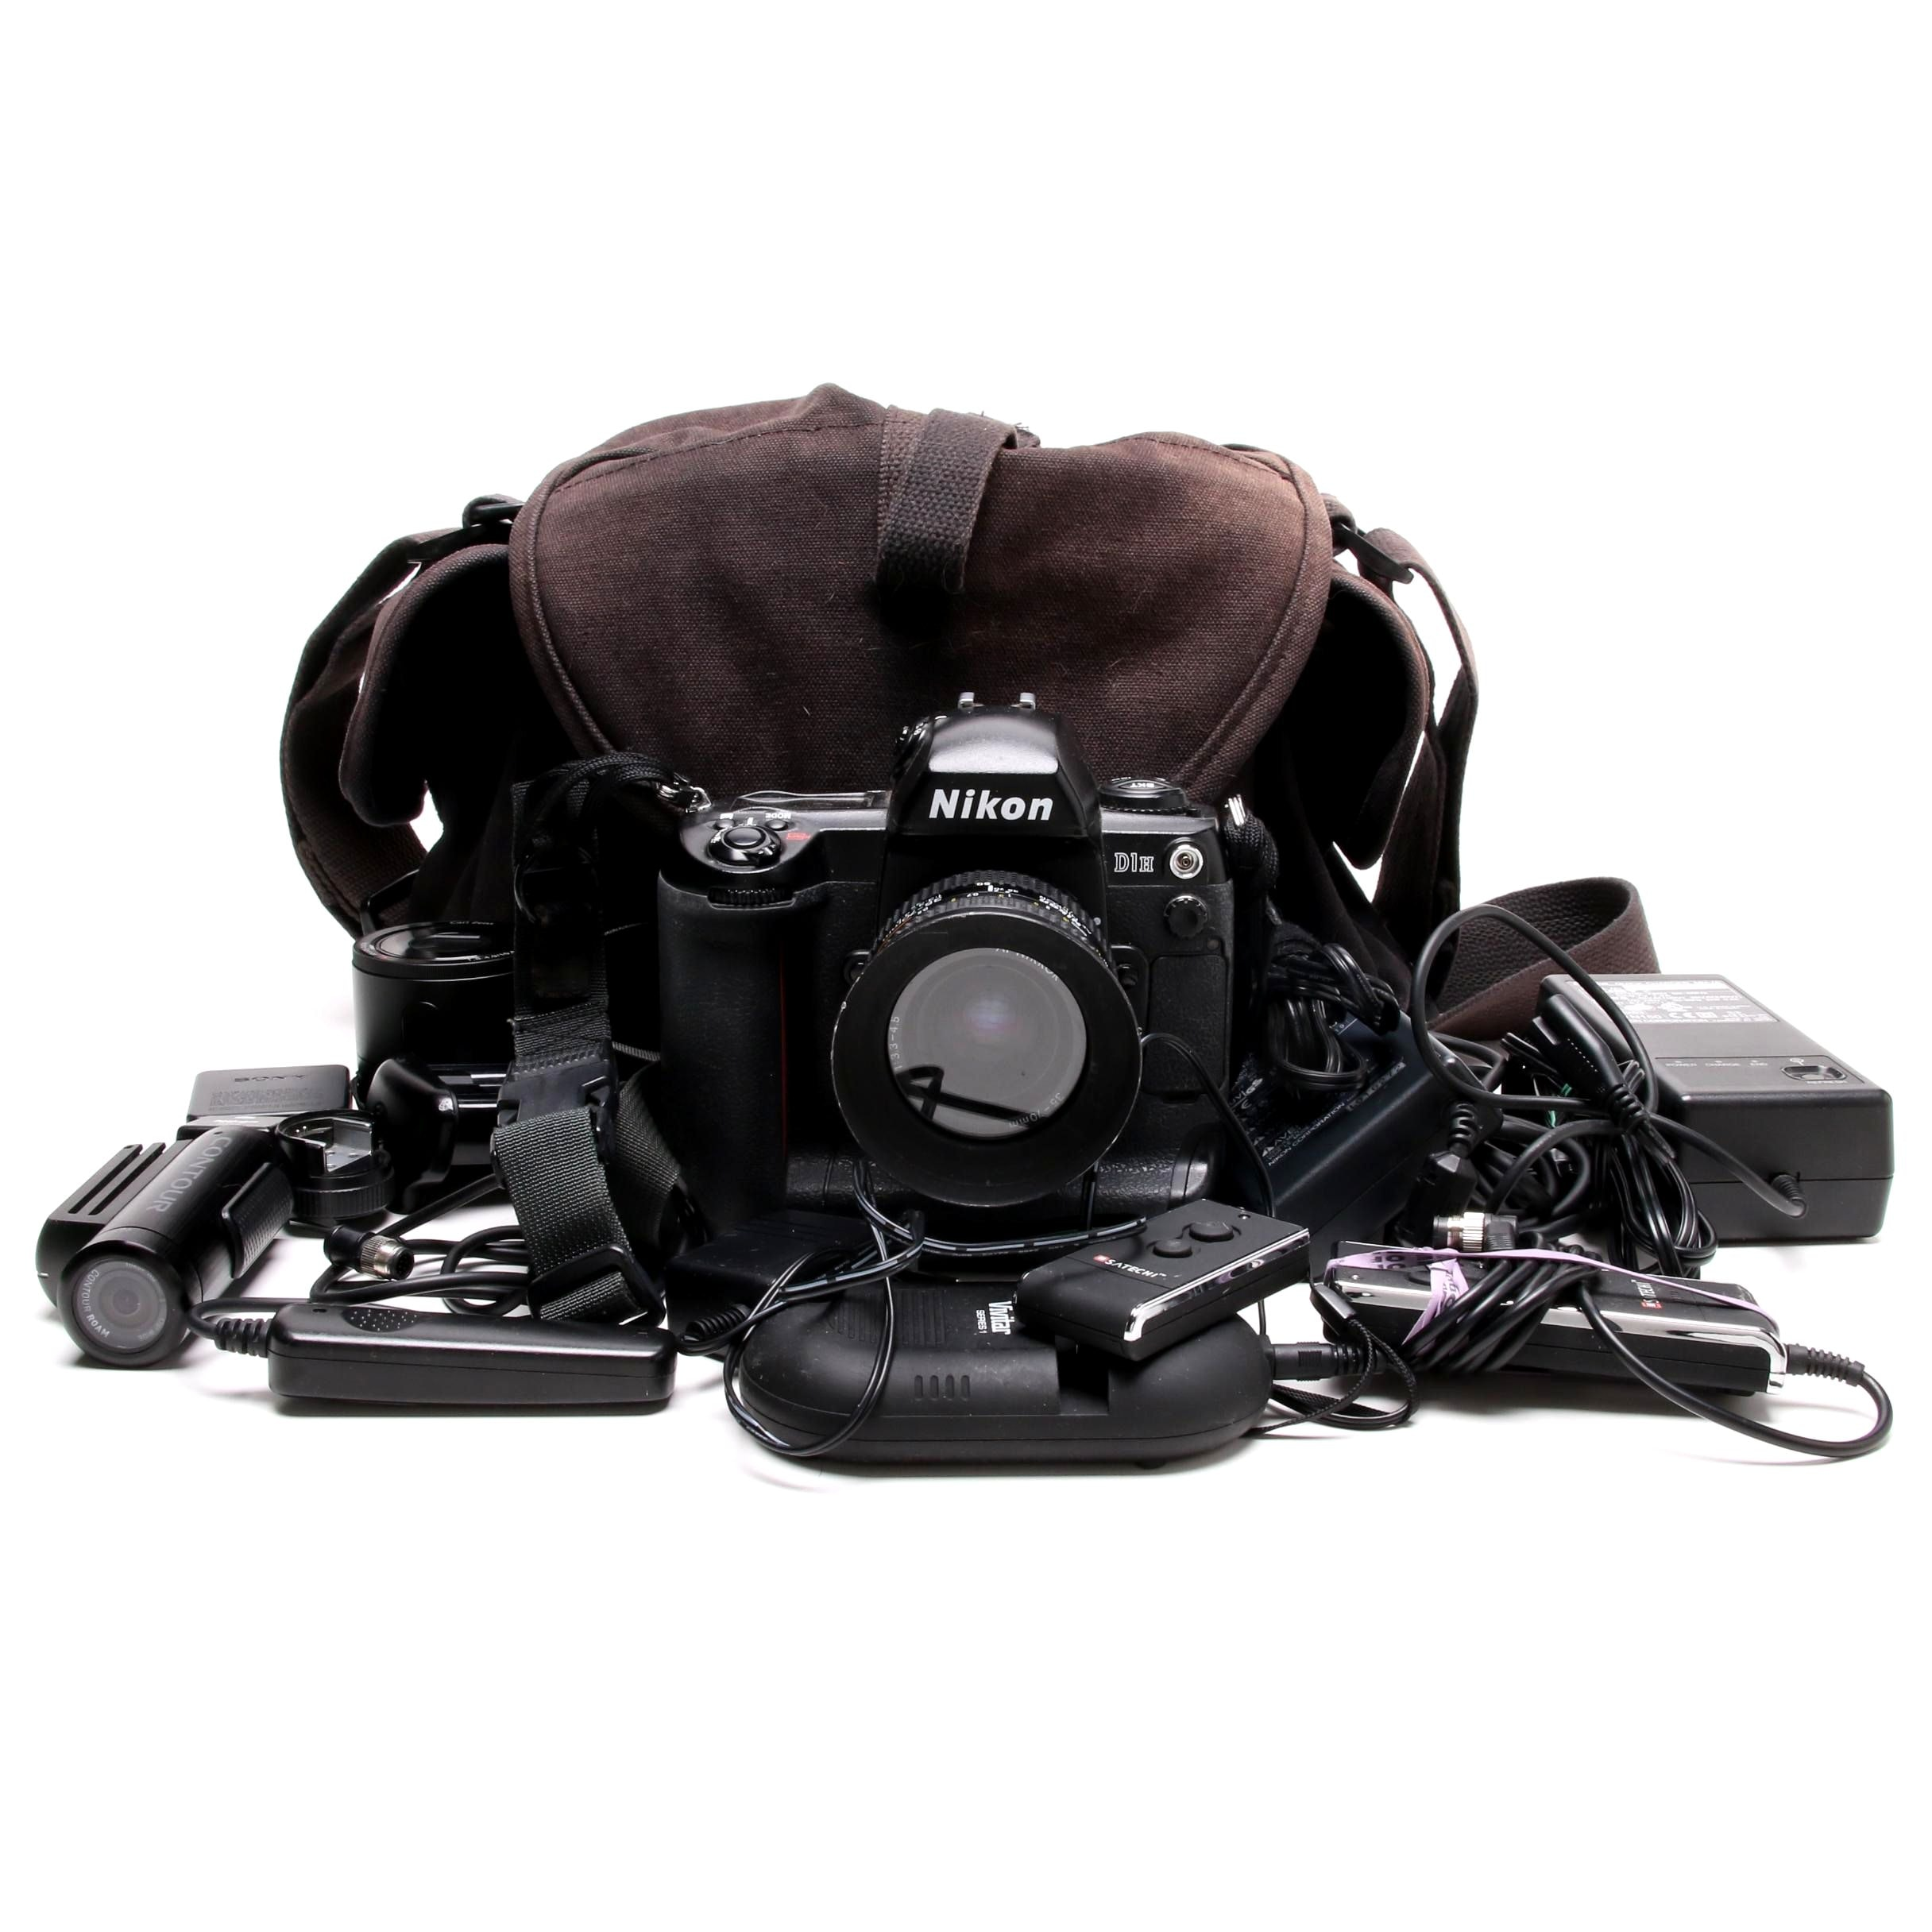 Nikon D1H DSLR Camera With Accessories